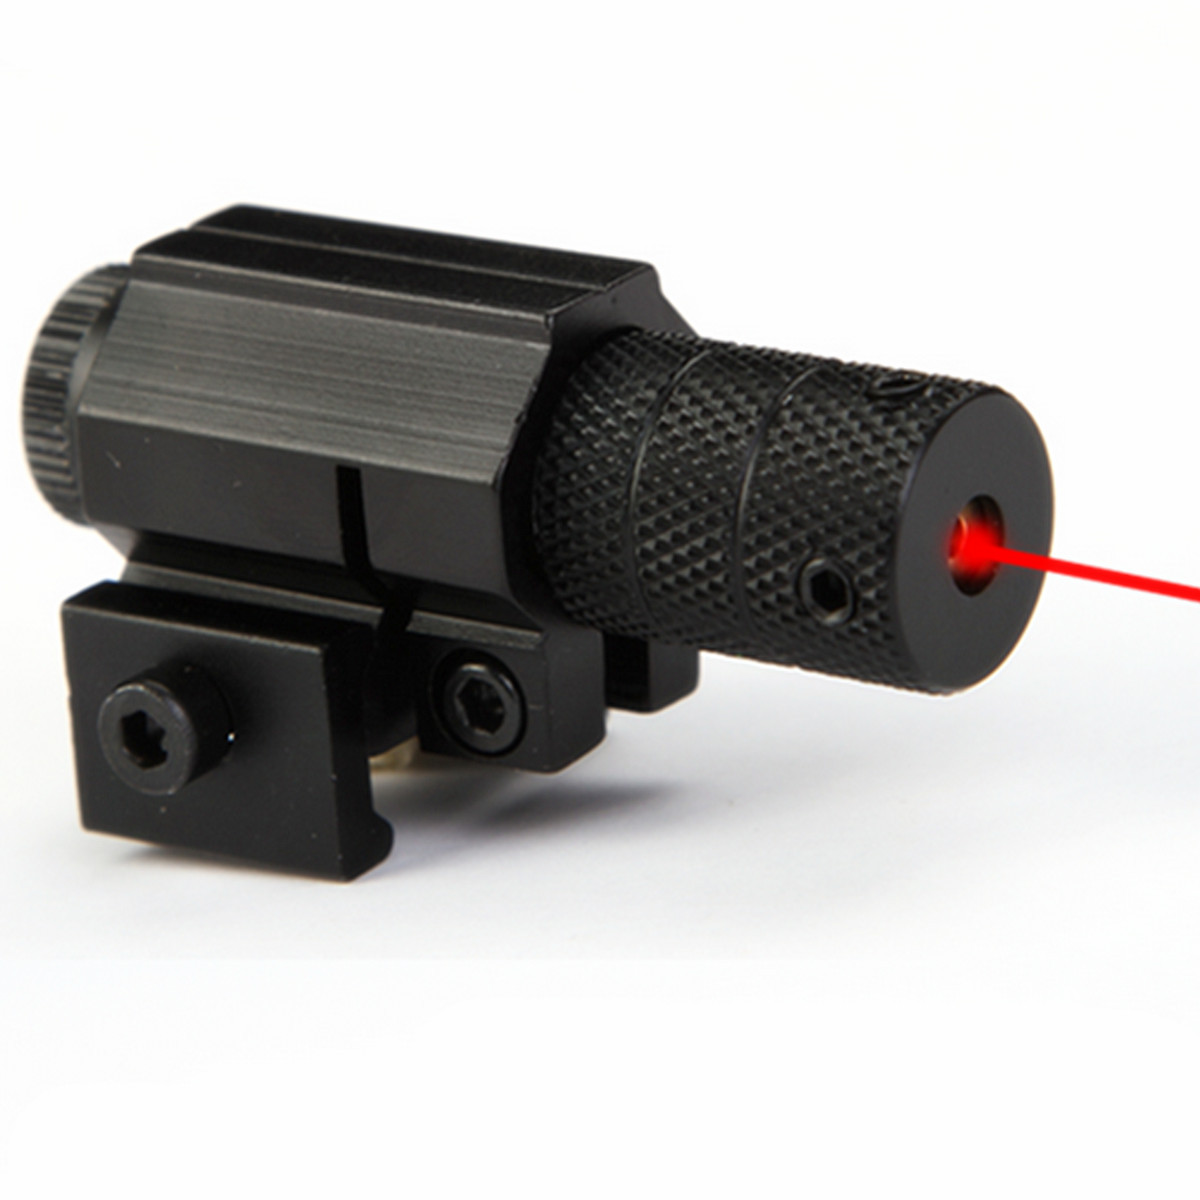 100m 835-655mm Tactical Aiming Red Beam Dot Laser Bore Sight Scope With Mount for Gun Rifle Pistol air telescope rifle mil dot 3 9x40 ao tactical red green blue llluminate rifle scope optical sight air scopes w sunshade